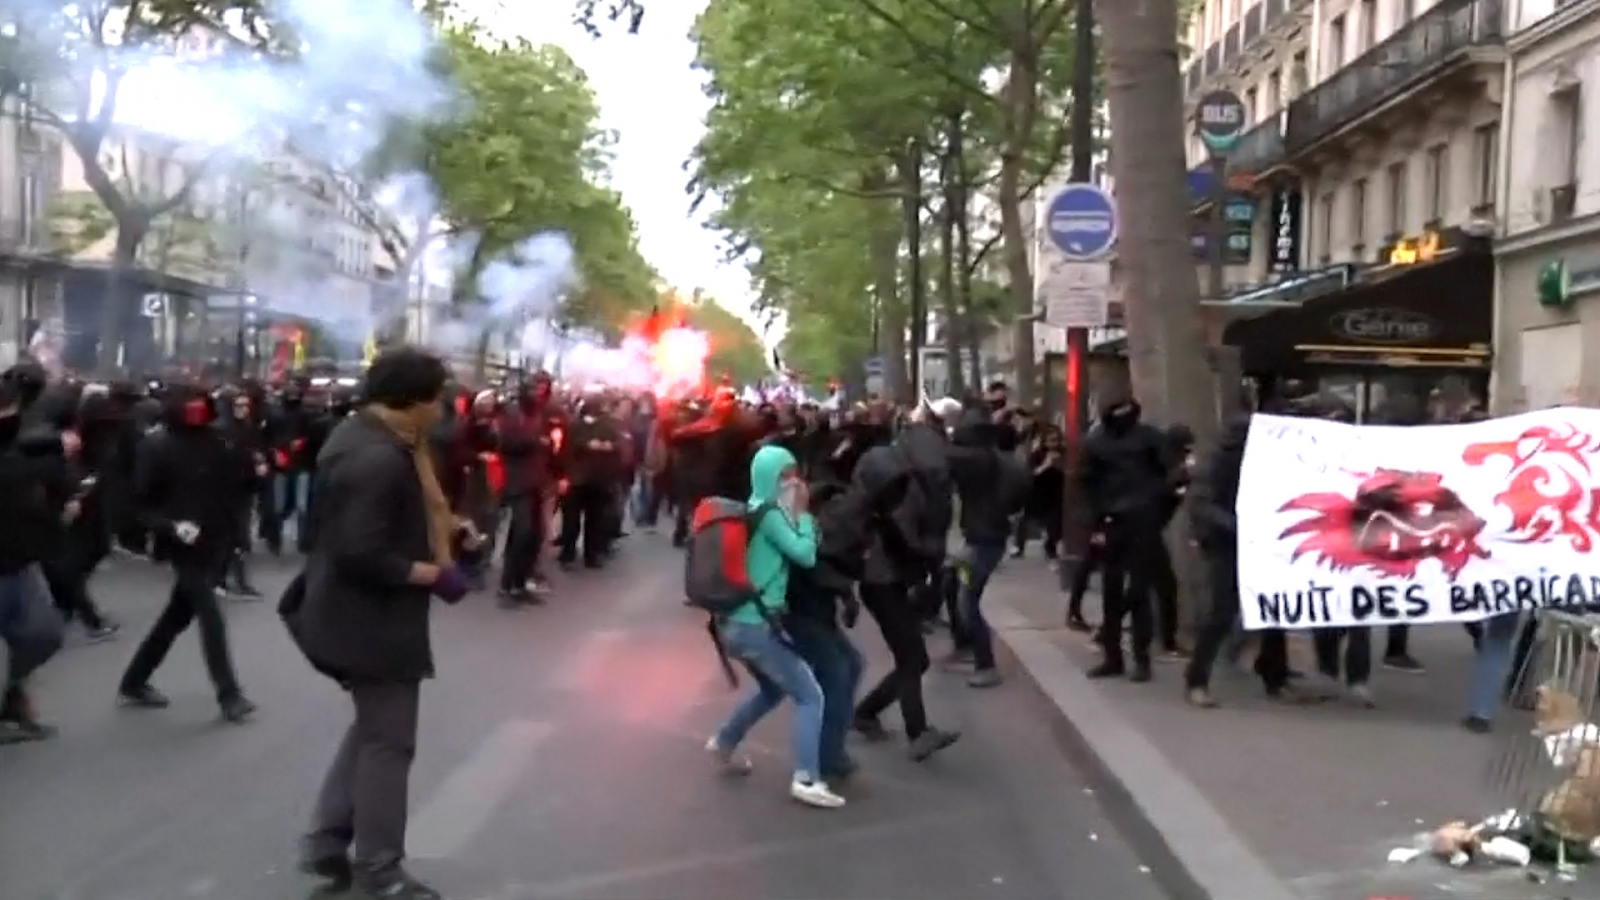 Paris: Protesters clash with police on evening of French presidential election